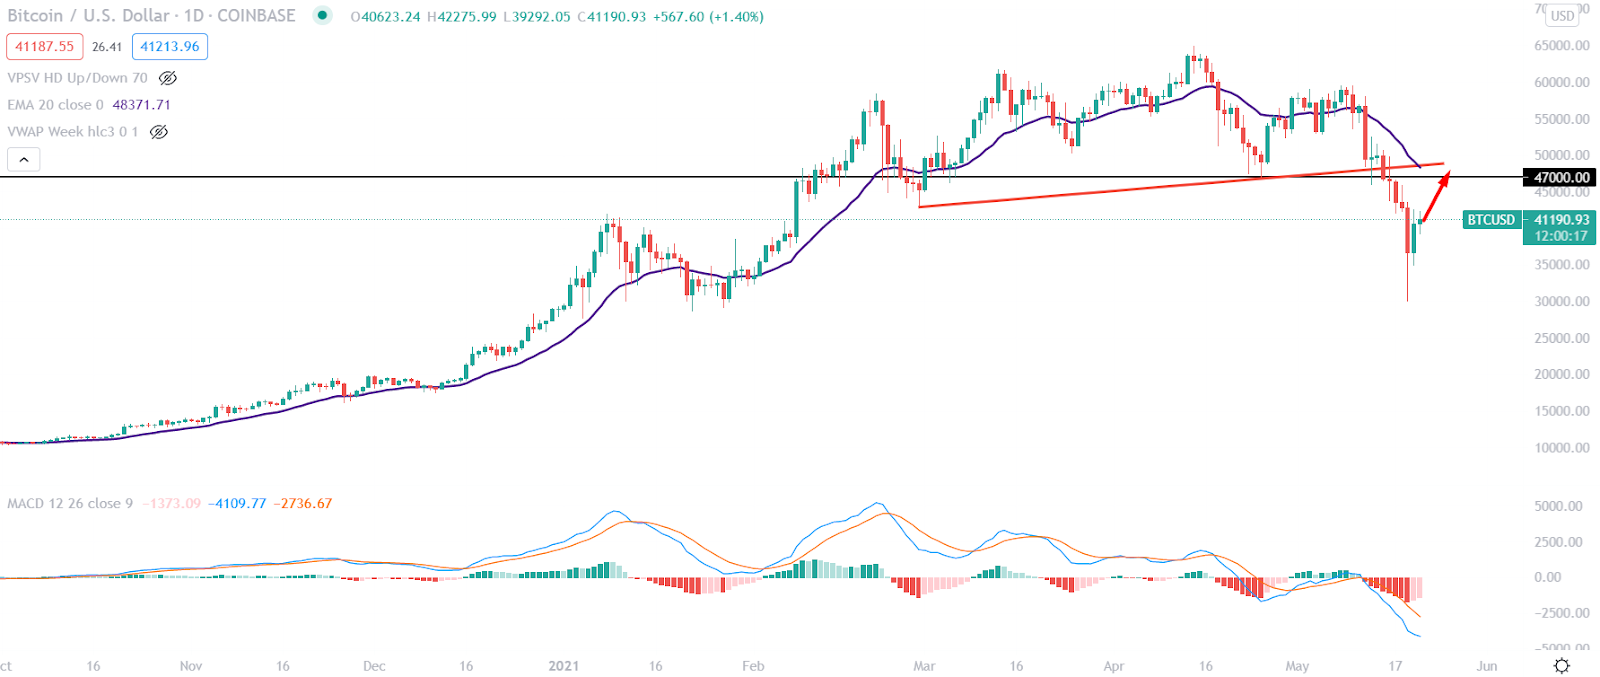 btcusd d1 - Bitcoin tested the $47,000.00 level after moving down from the all-time high.